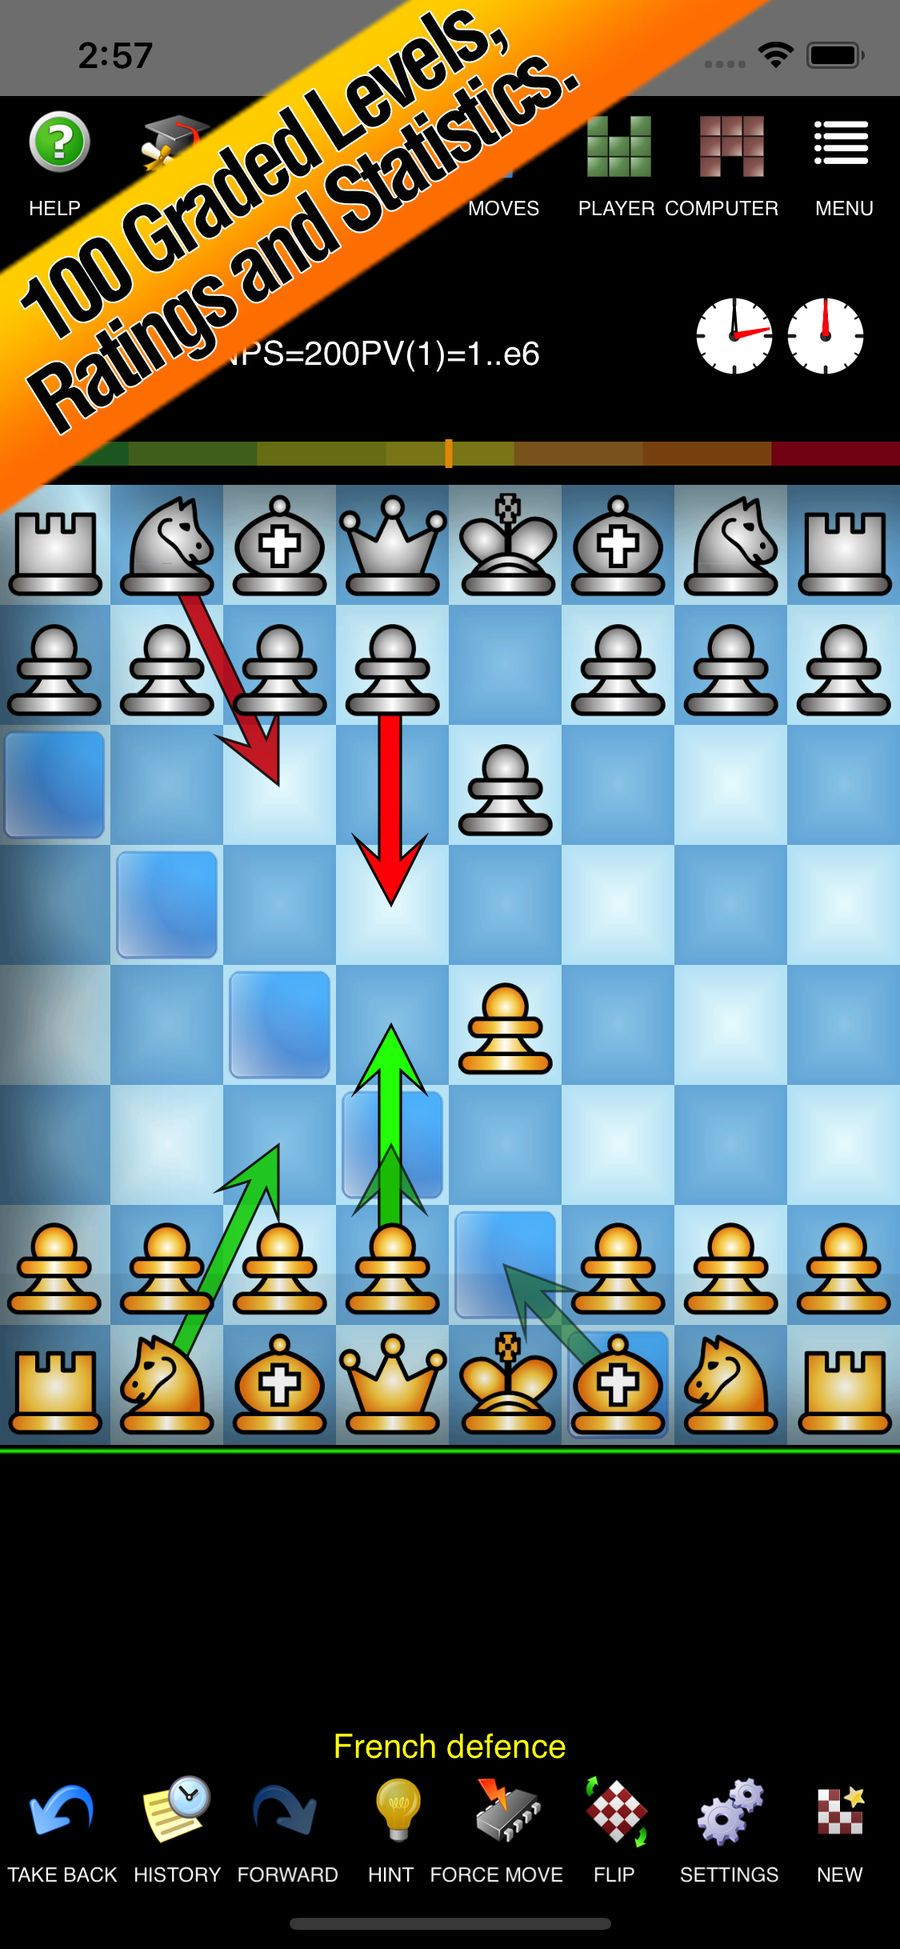 Chess - Play Friends Online,3D #Strategy#Games#Board#ios